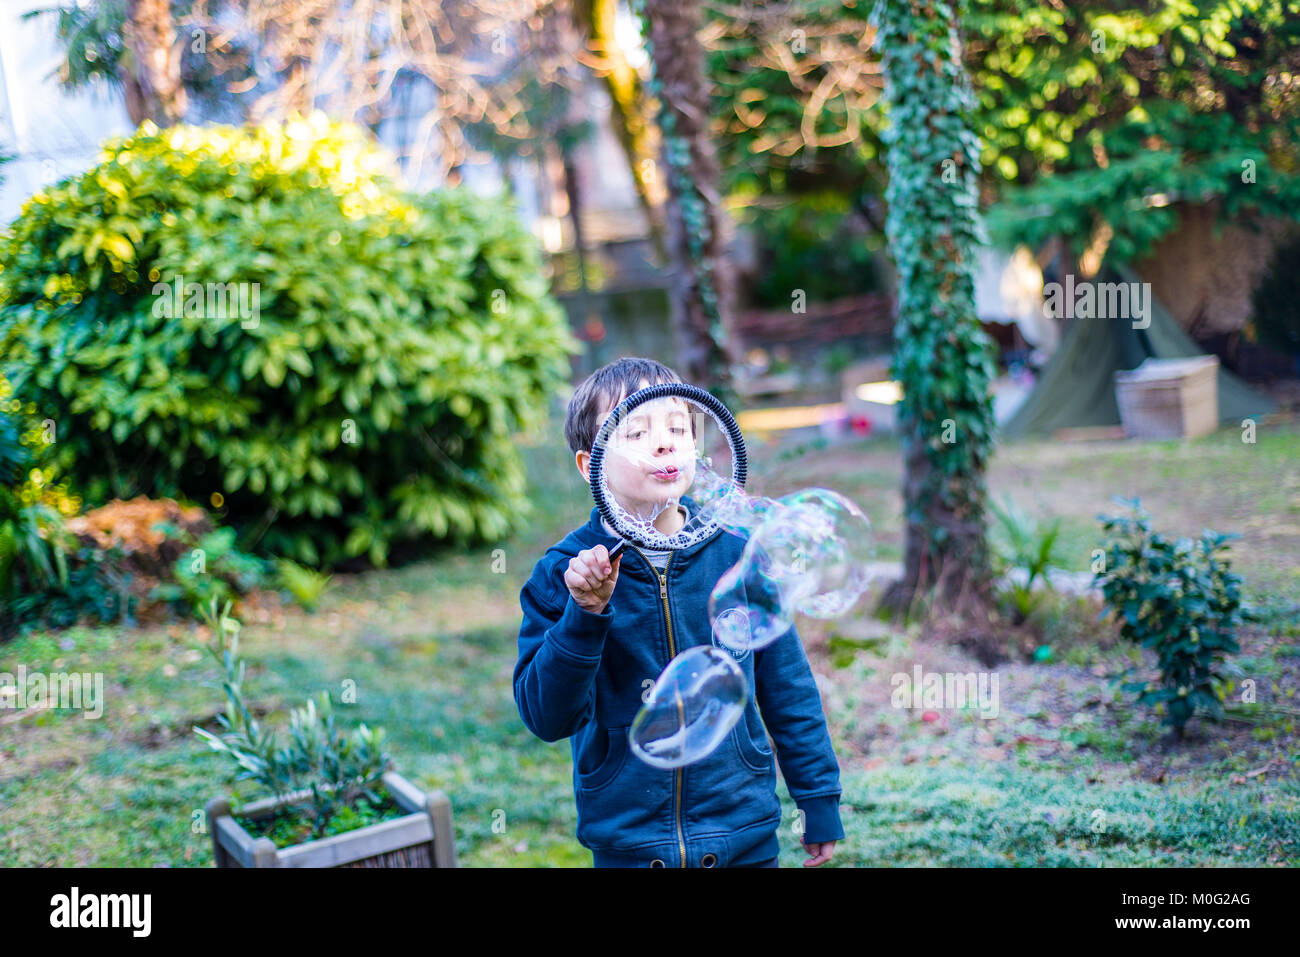 7-year-old child outdoors in the garden in winter makes big soap bubbles Stock Photo